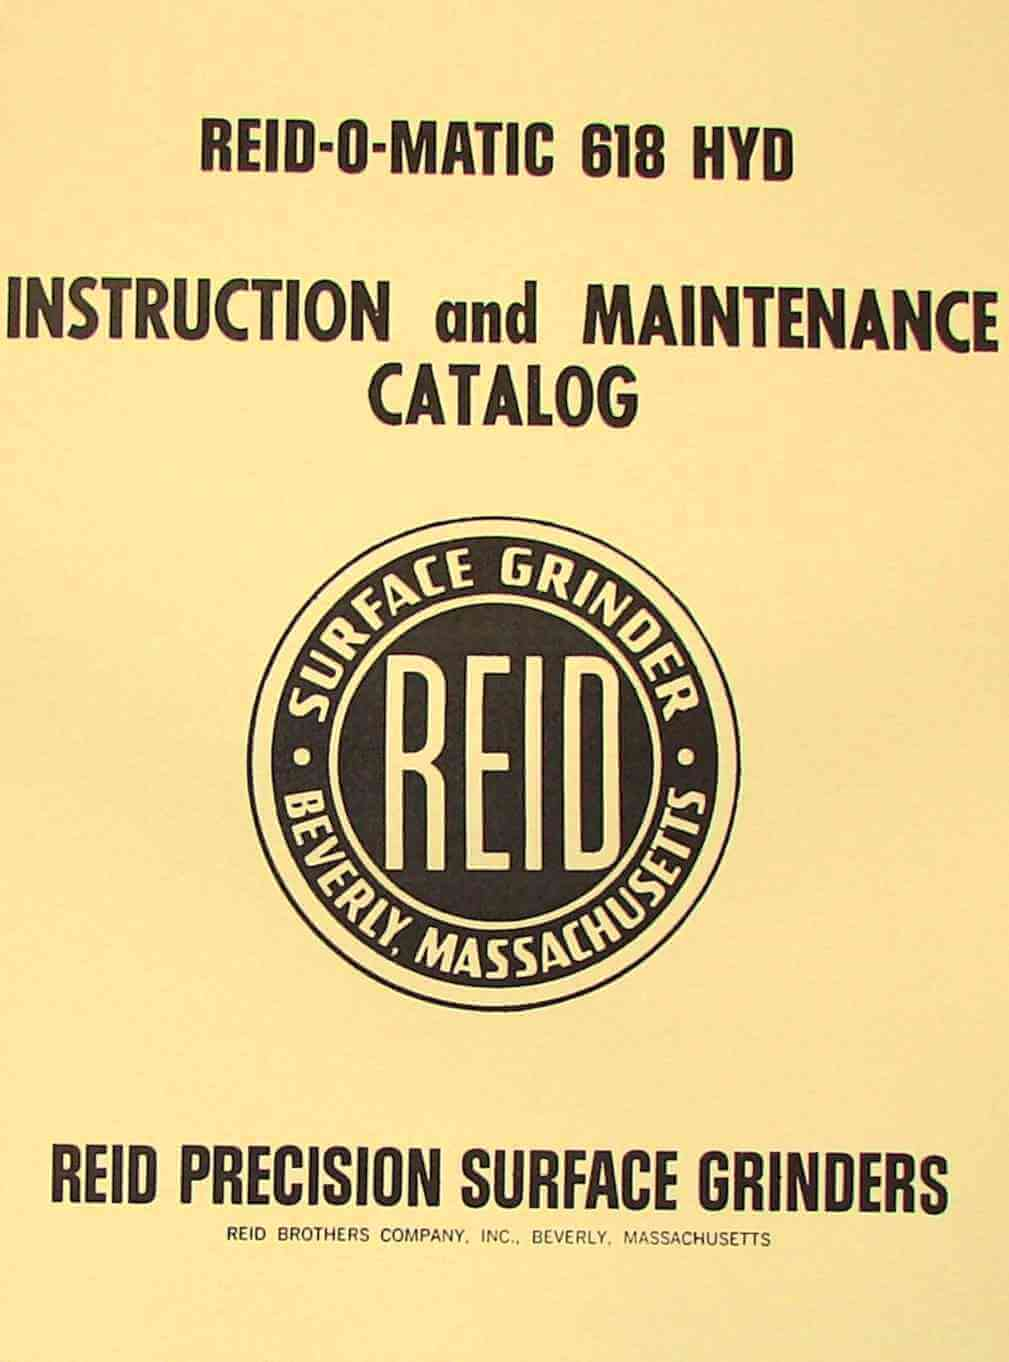 Royal Enfield Wiring Diagram together with VAN NORMAN 28 28A 38M 38MA 38MEA Milling Machine Operator Part Manual p 733 besides Schatten Book Of Standard Wiring Diagrams furthermore Wiring Diagram For Century Wreckers moreover Jet Enco Msc Asian 1550 T Metal Lathe Instructions Parts Manual. on supermax wiring diagram